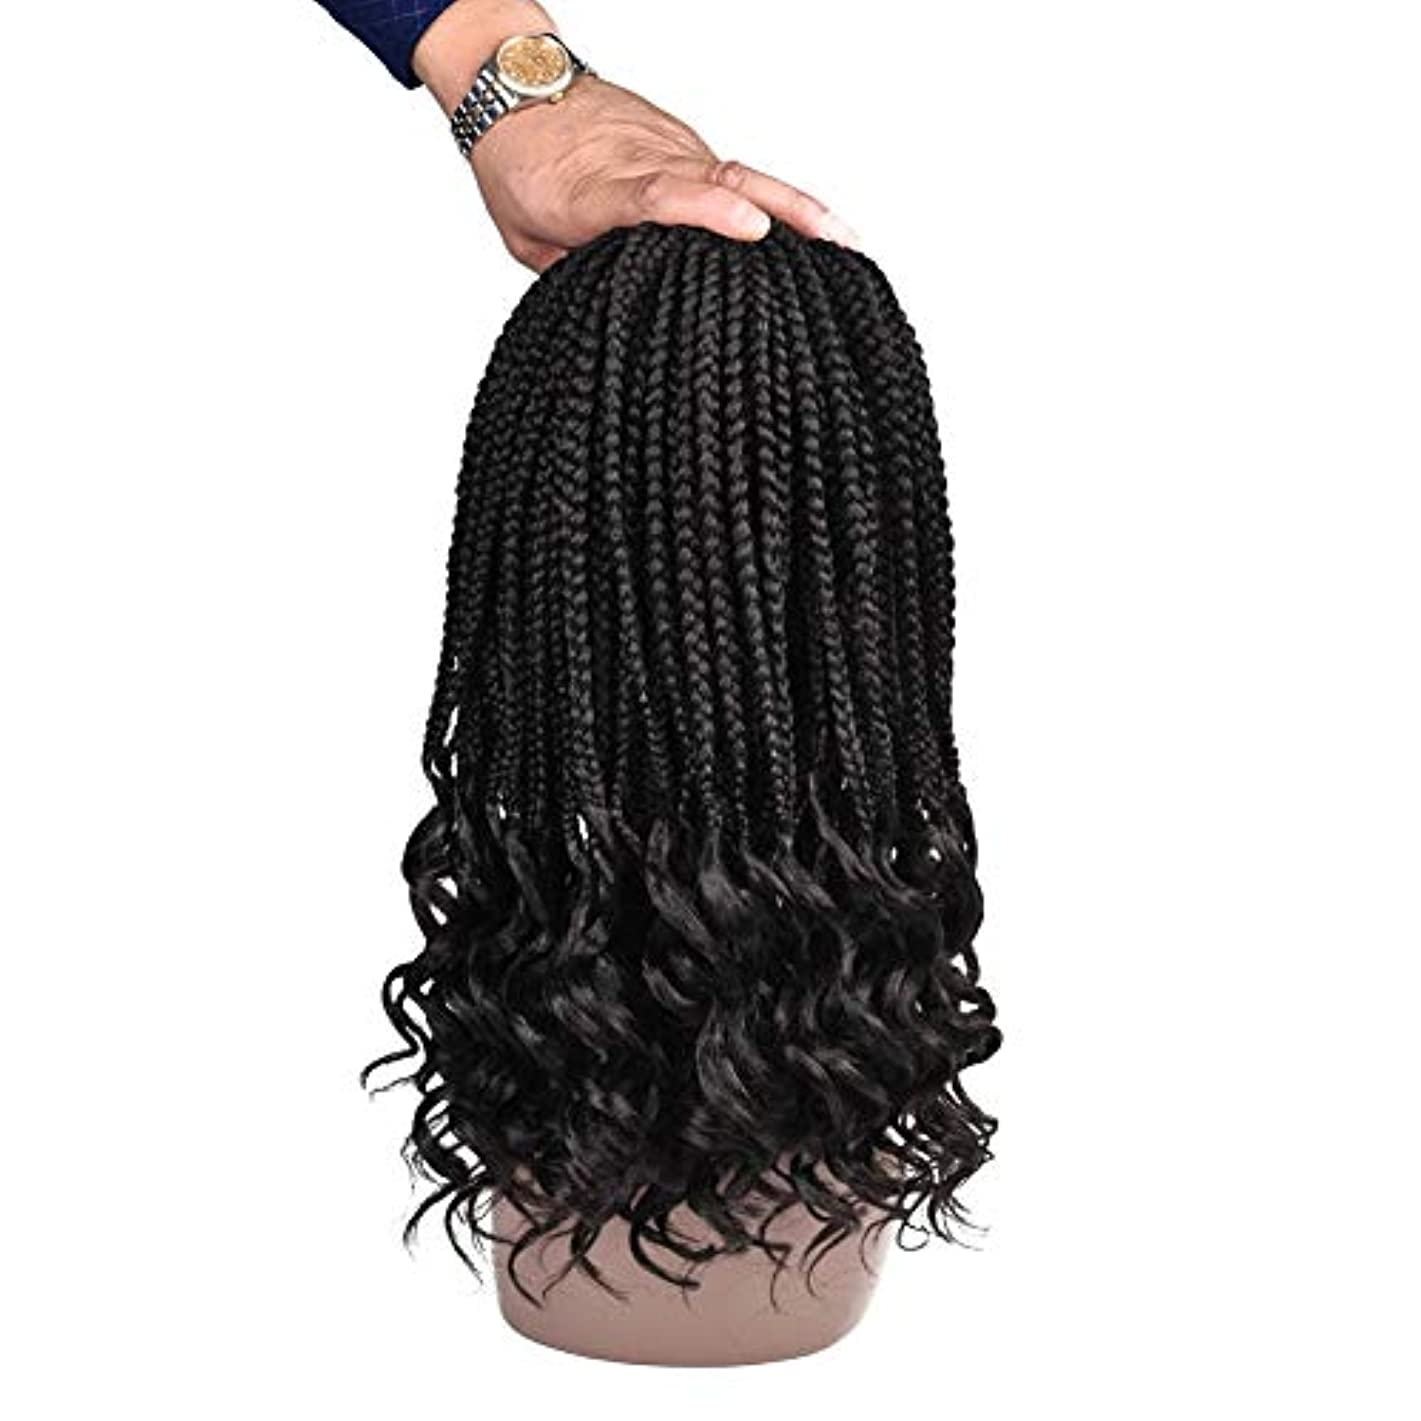 Refined Hair 6Packs 14Inch 3S Wavy Box Braids Crochet Braid Hair Extensions 22roots Ombre Kanekalon Synthetic Goddess Box Braids With Wavy Free End Crochet Braids (14inch, 2)